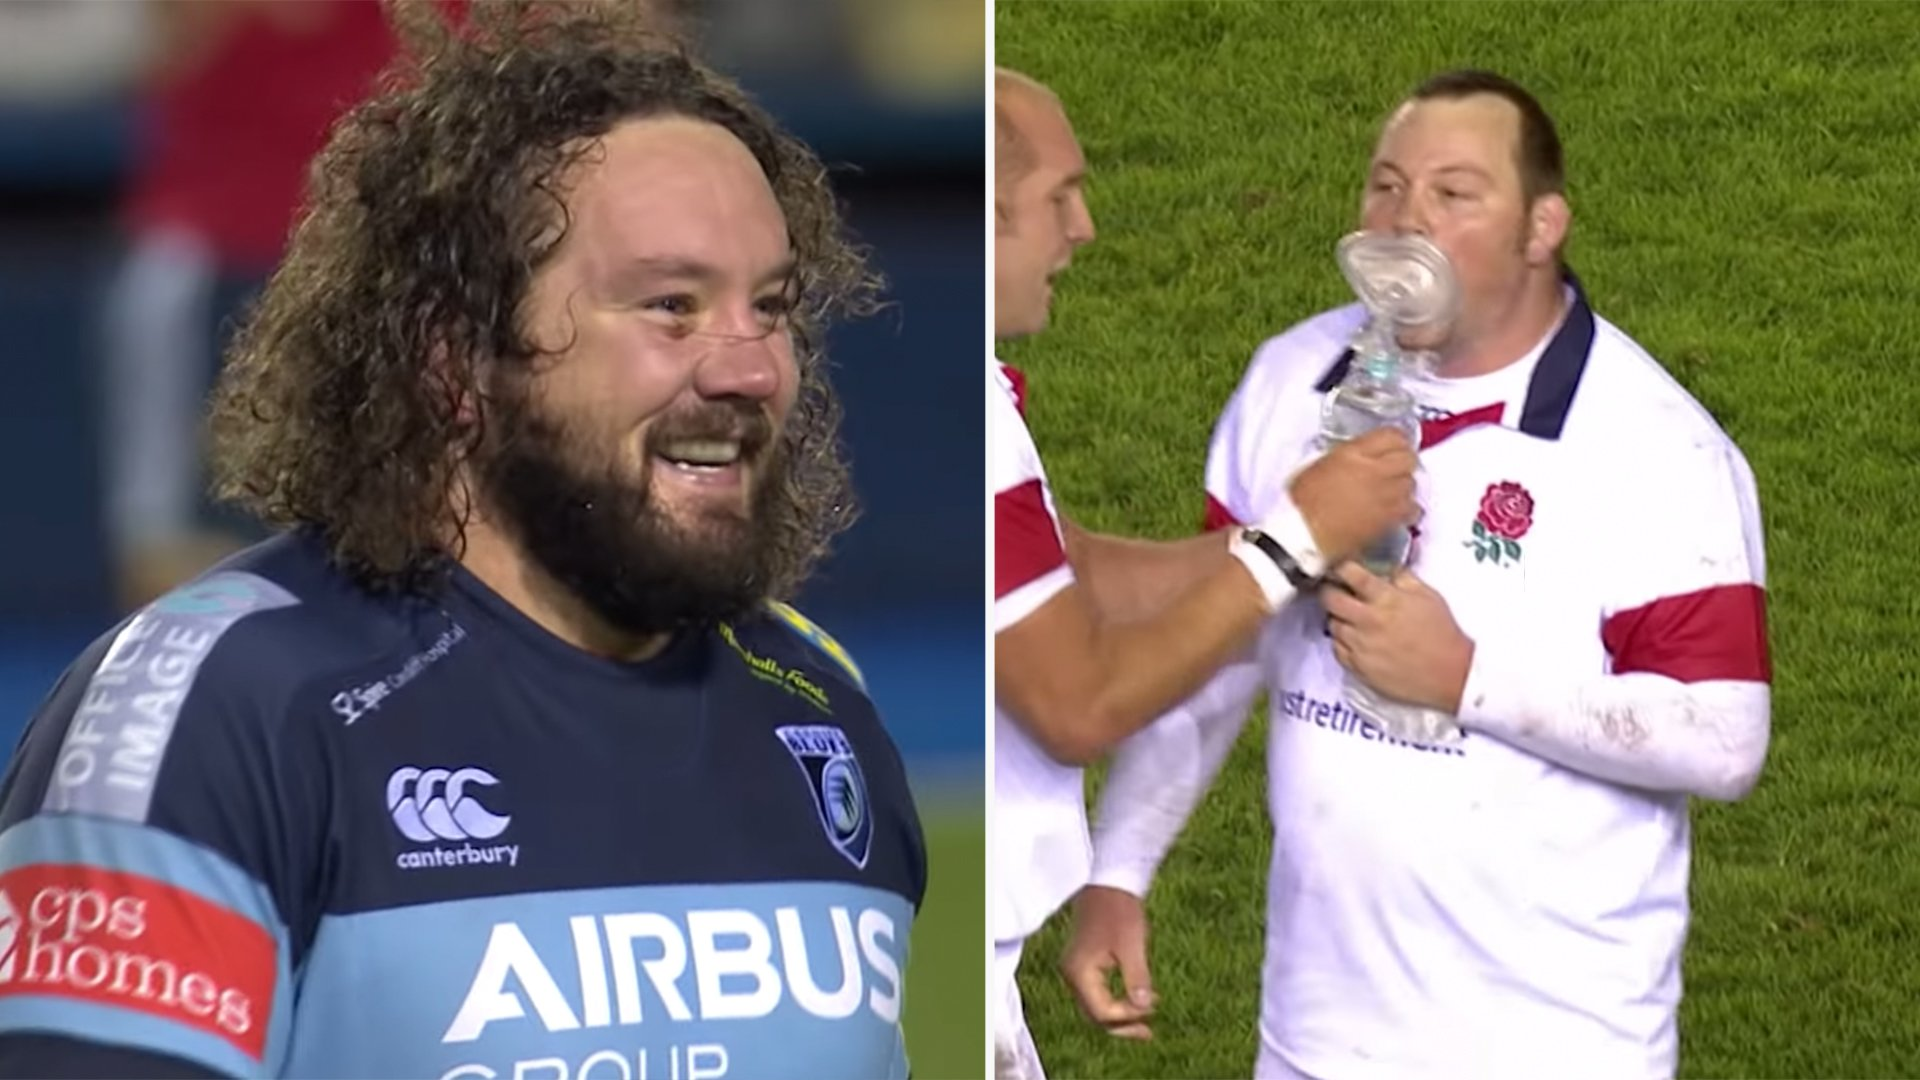 New forwards skill compilation is prove the the front row should be cherished in rugby